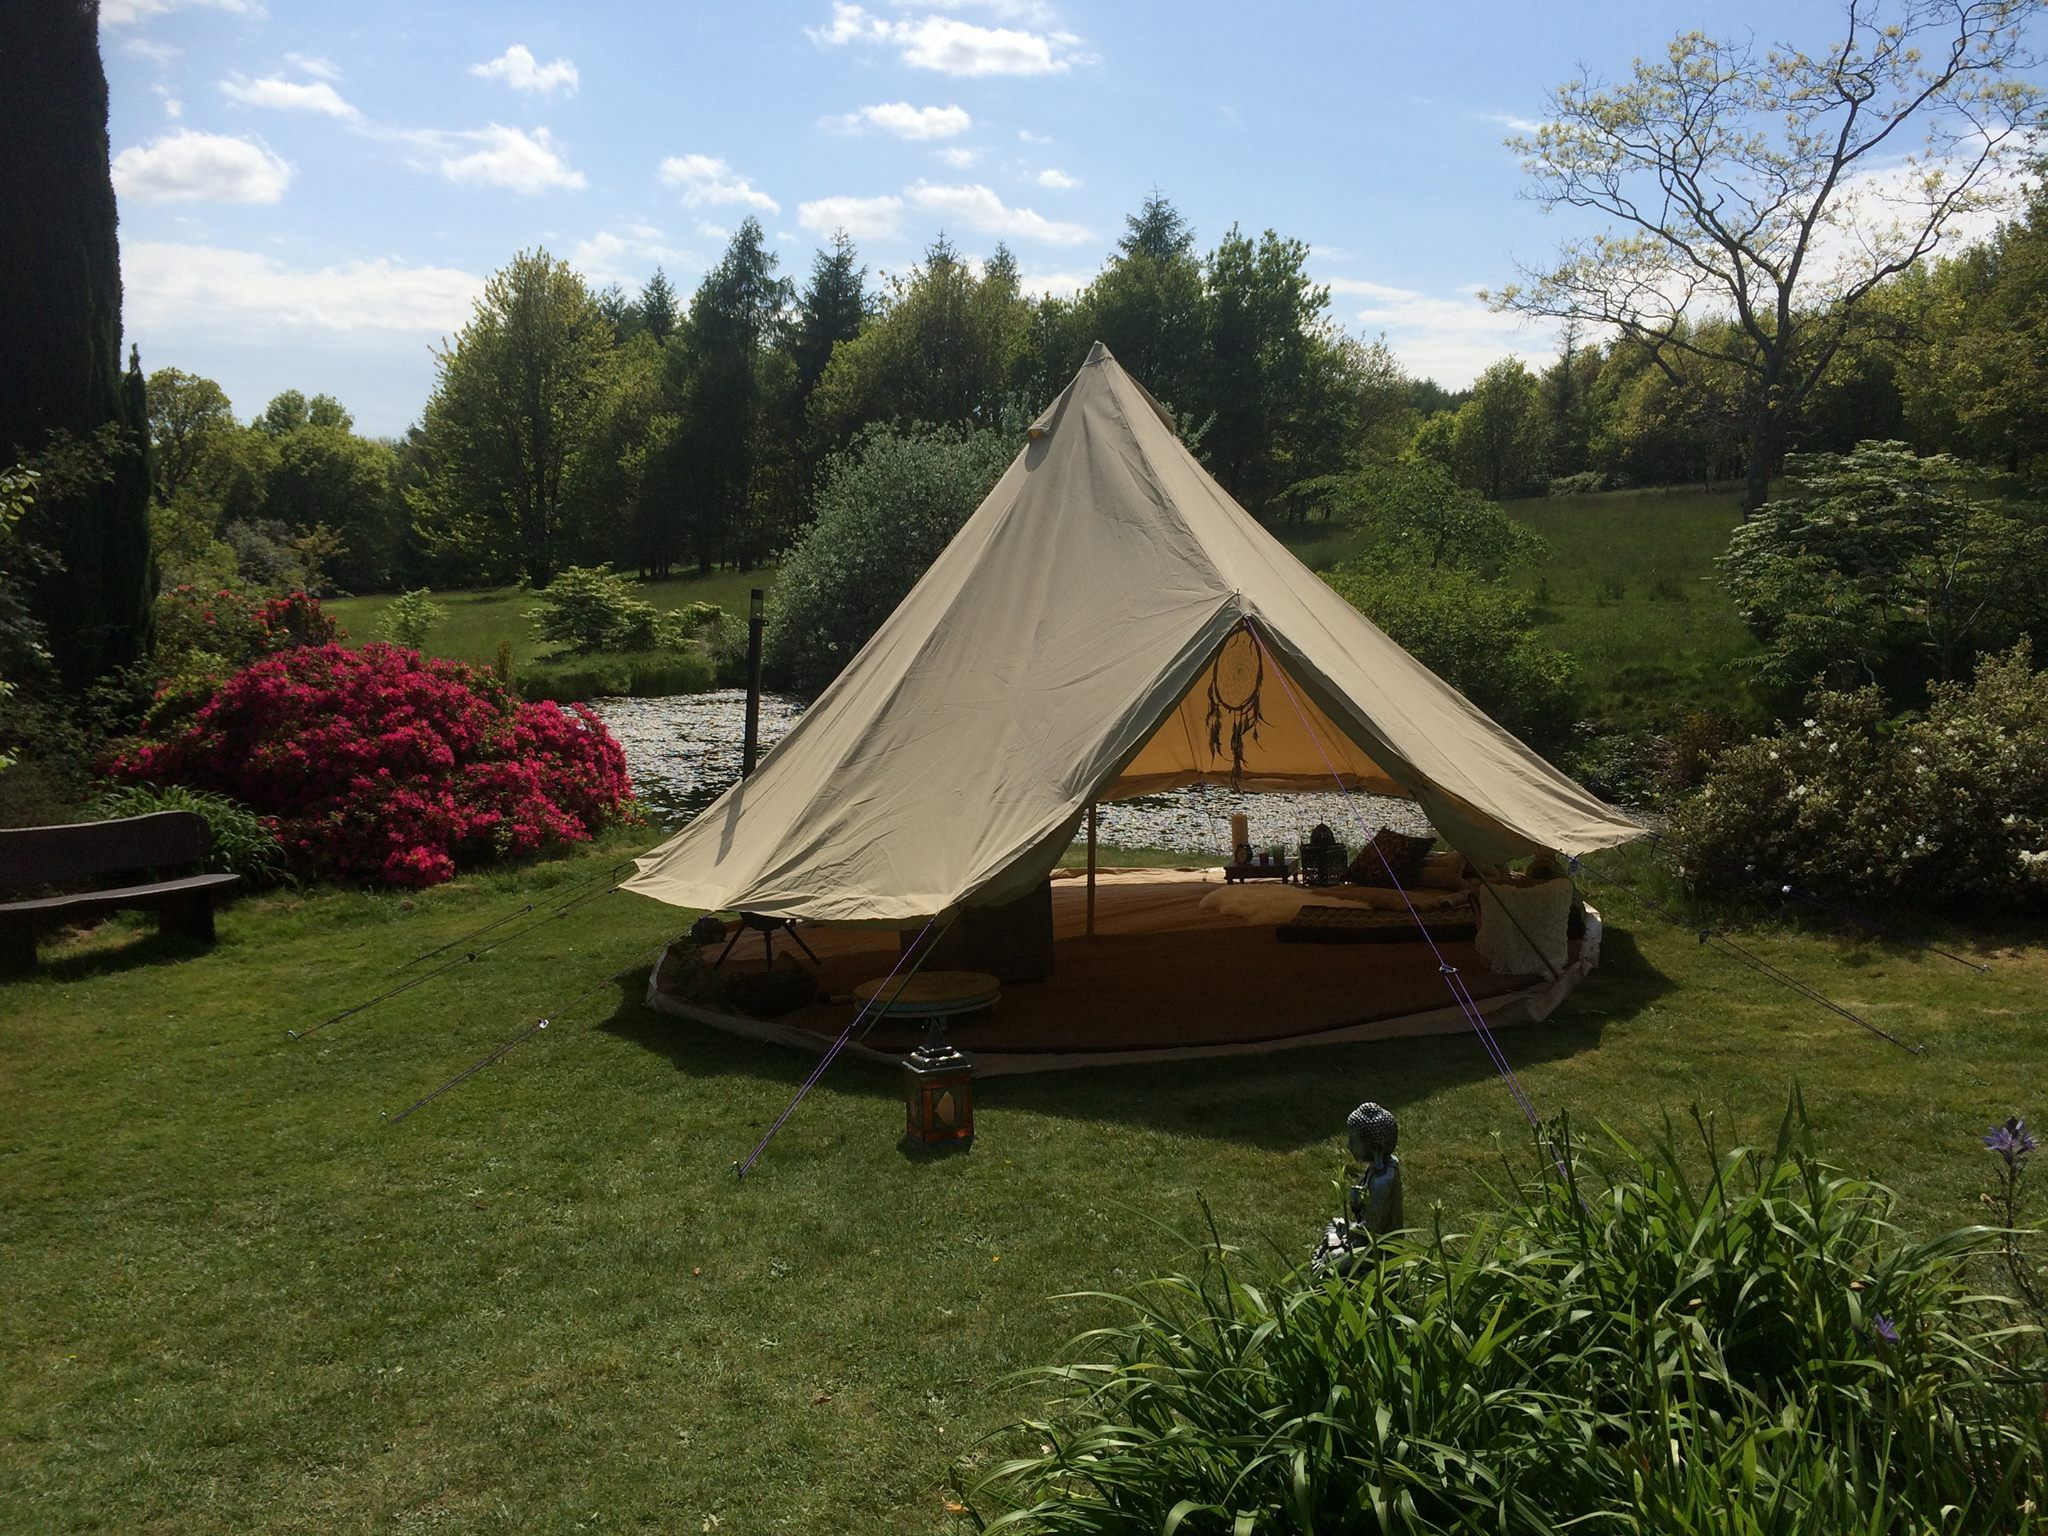 Boutique C&ing. Battersea London. Business. C&ing. Summer. Travel. Holiday & Boutique Camping. Battersea London. Business. Camping. Summer ...